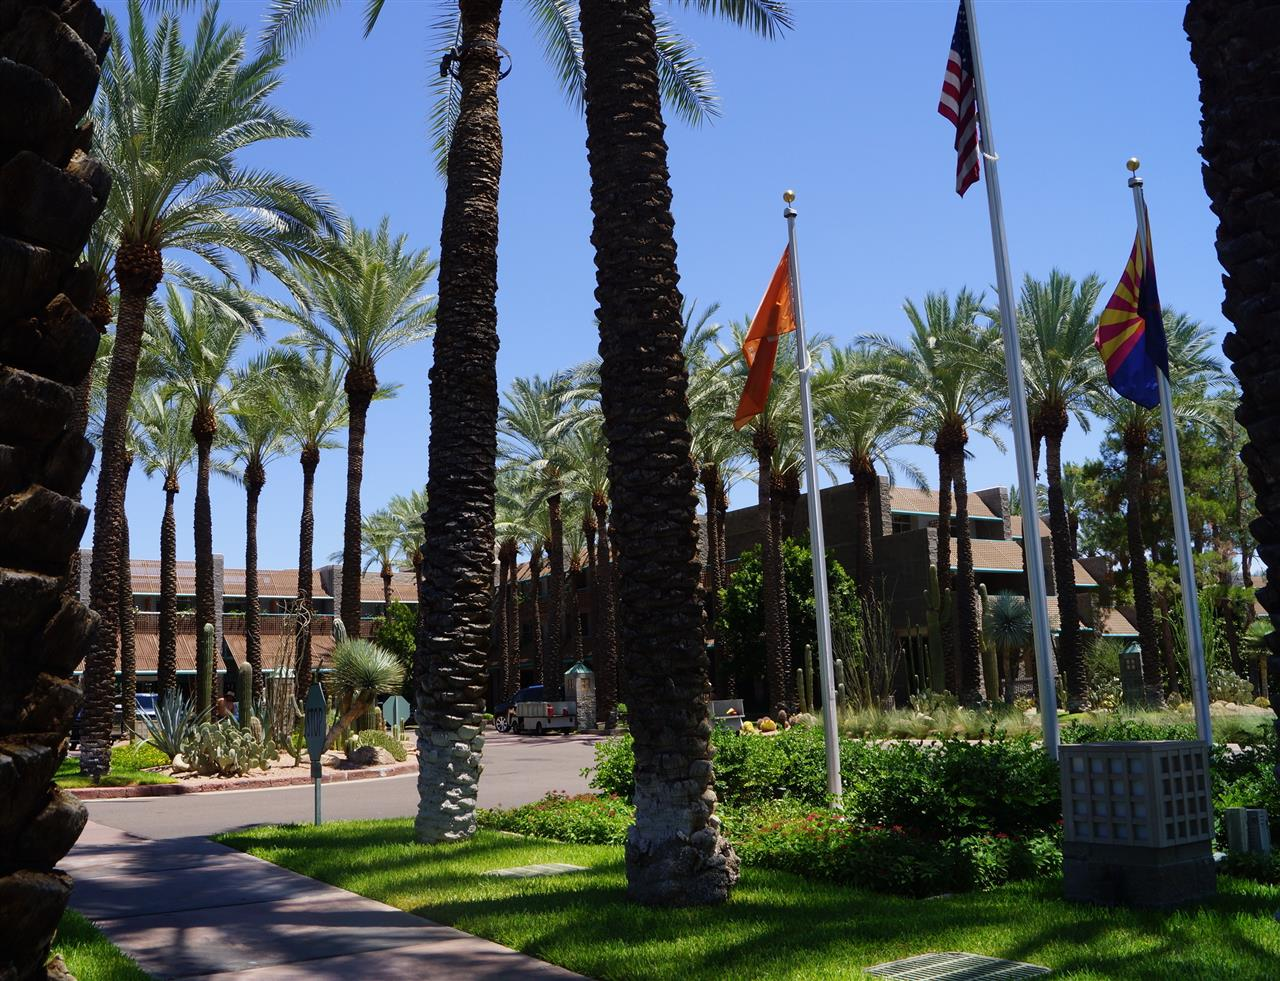 Scottsdale, AZ is known for its resorts.  Relax and play golf at the Hyatt at Gainey Ranch.